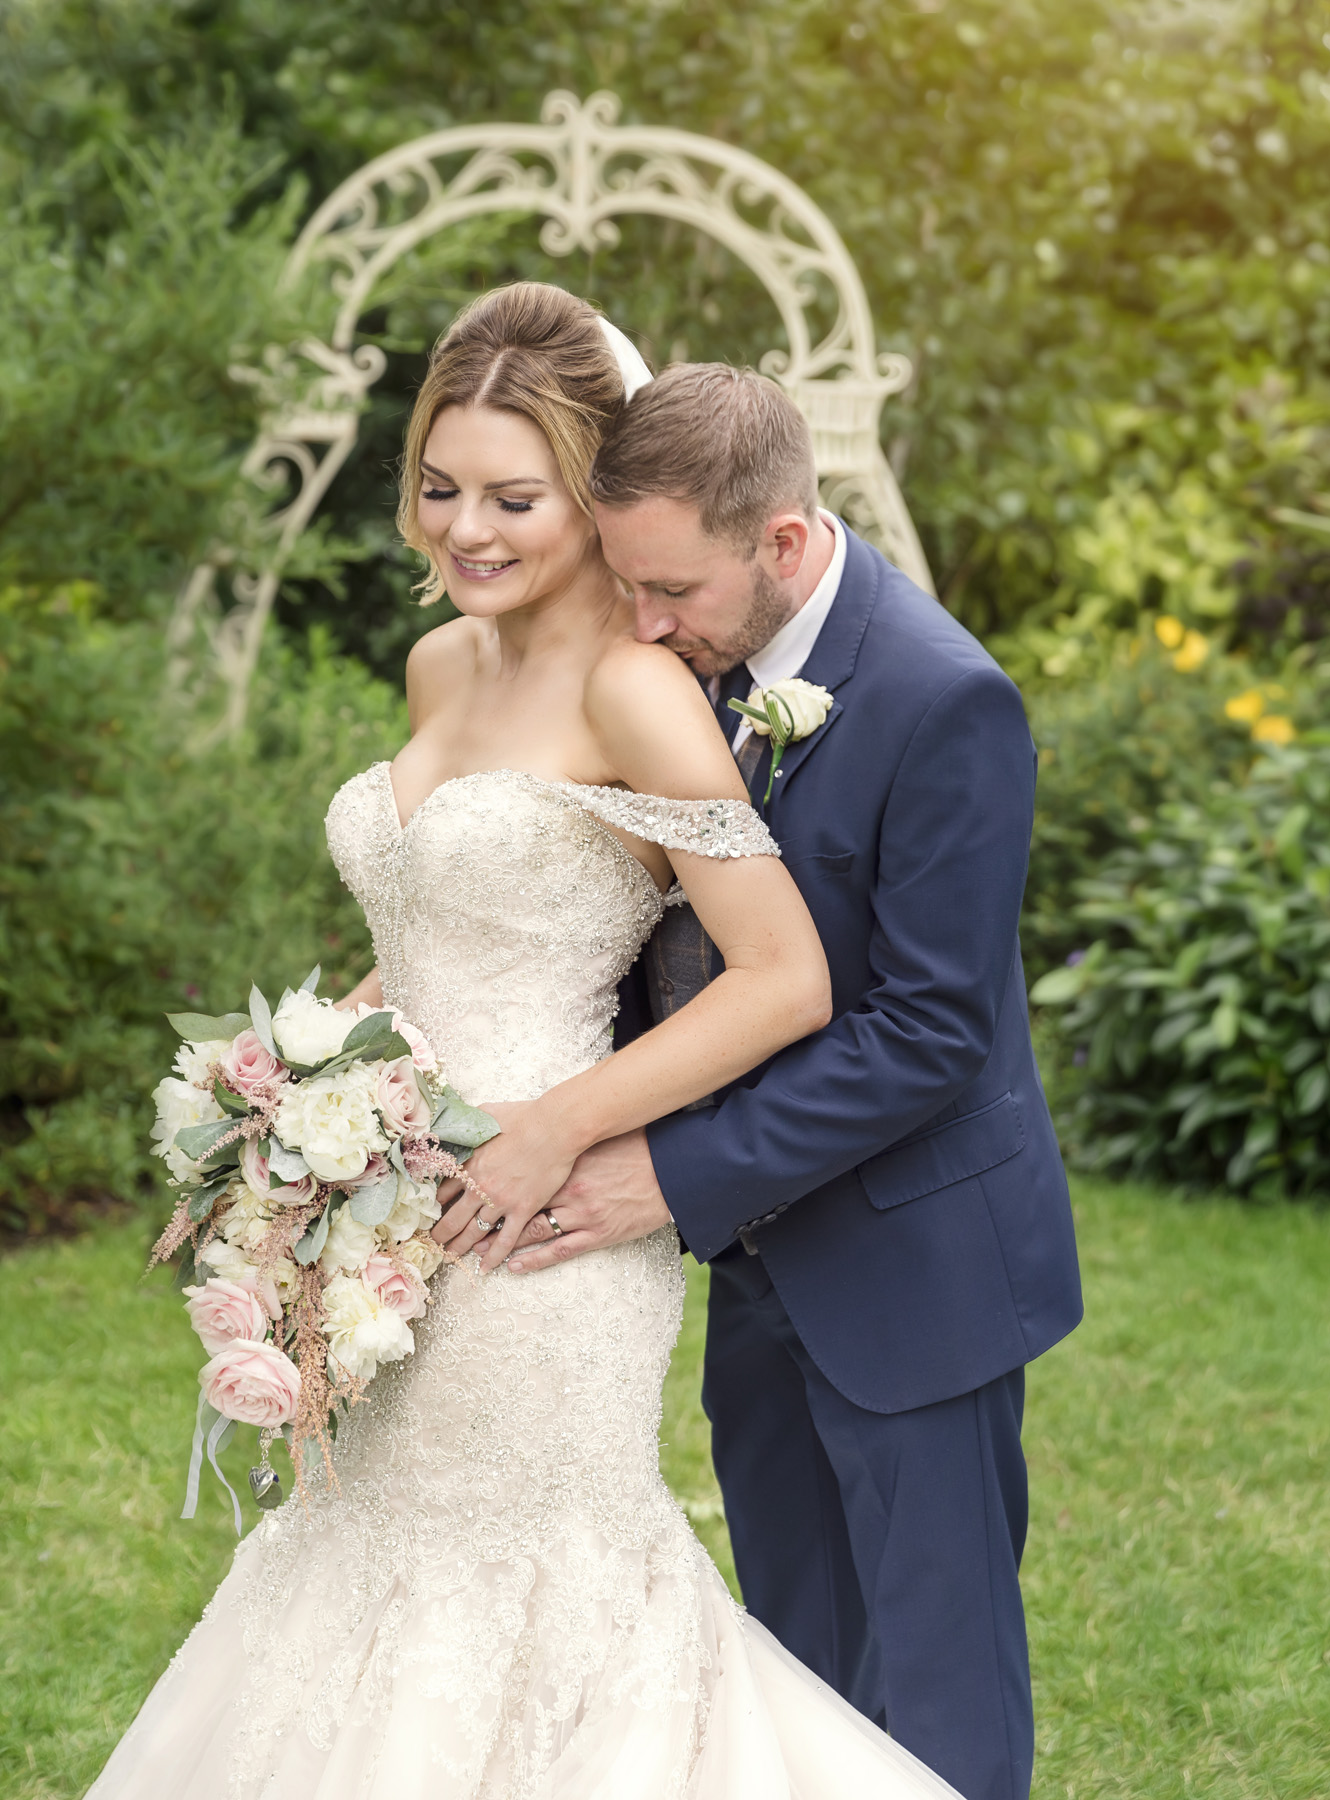 Bride & Groom portrait in the gardens at Warwick house